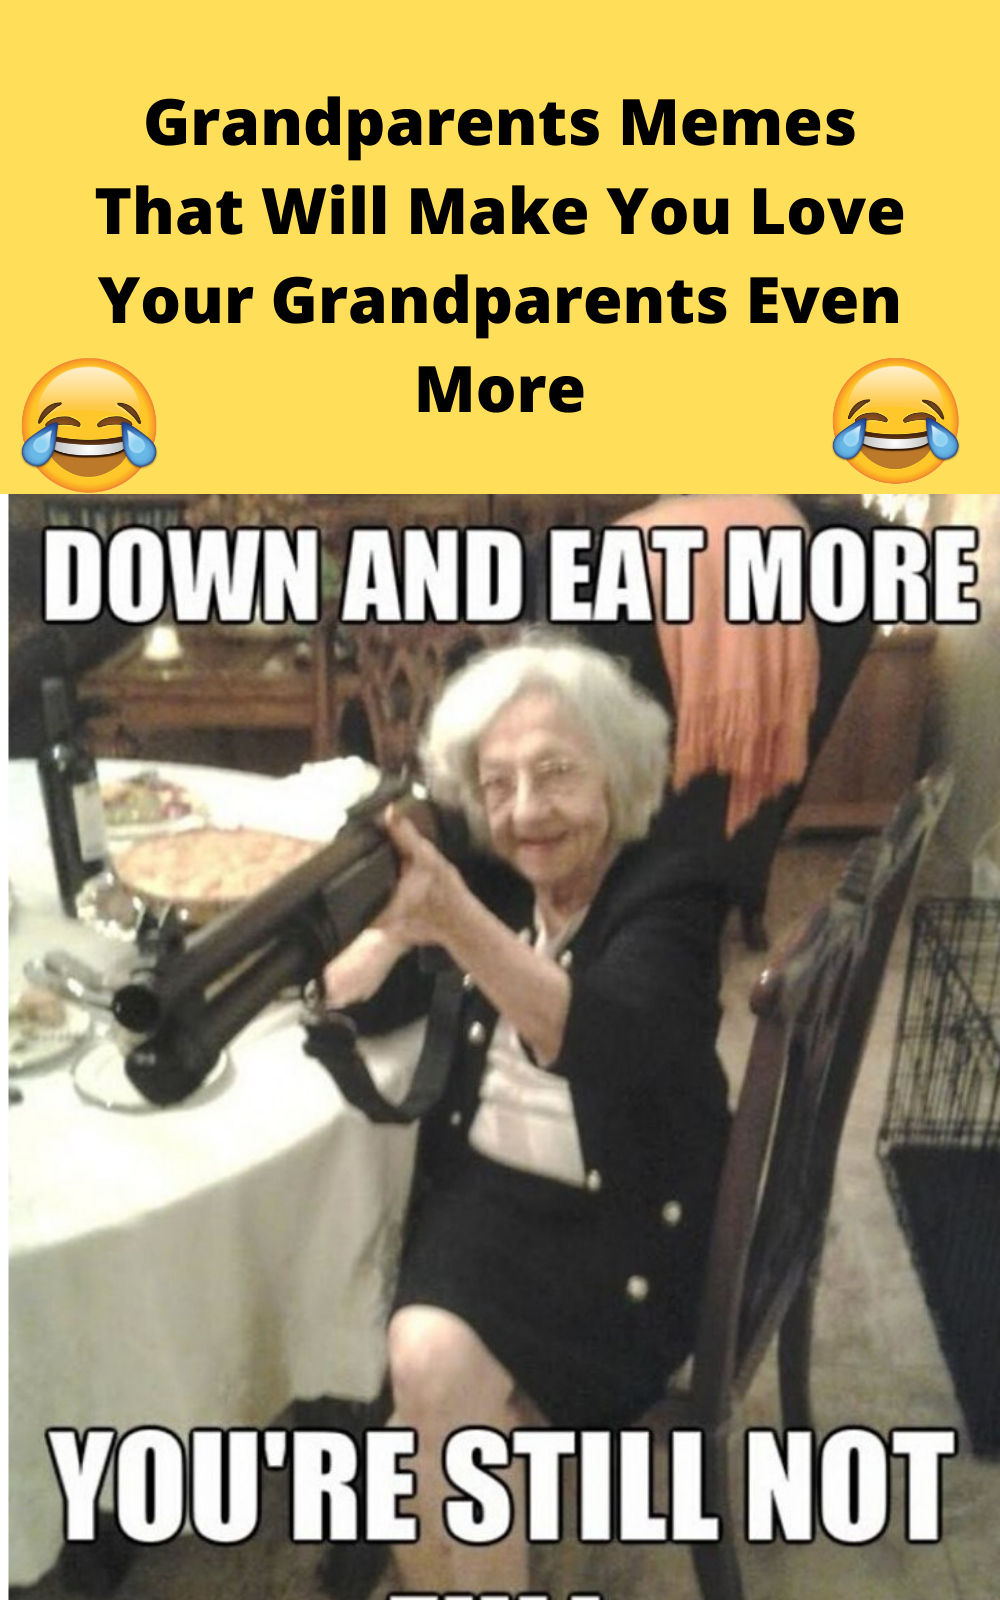 Grandparents Memes That Will Make You Love Your Grandparents Even More In 2020 Memes Humor Jokes